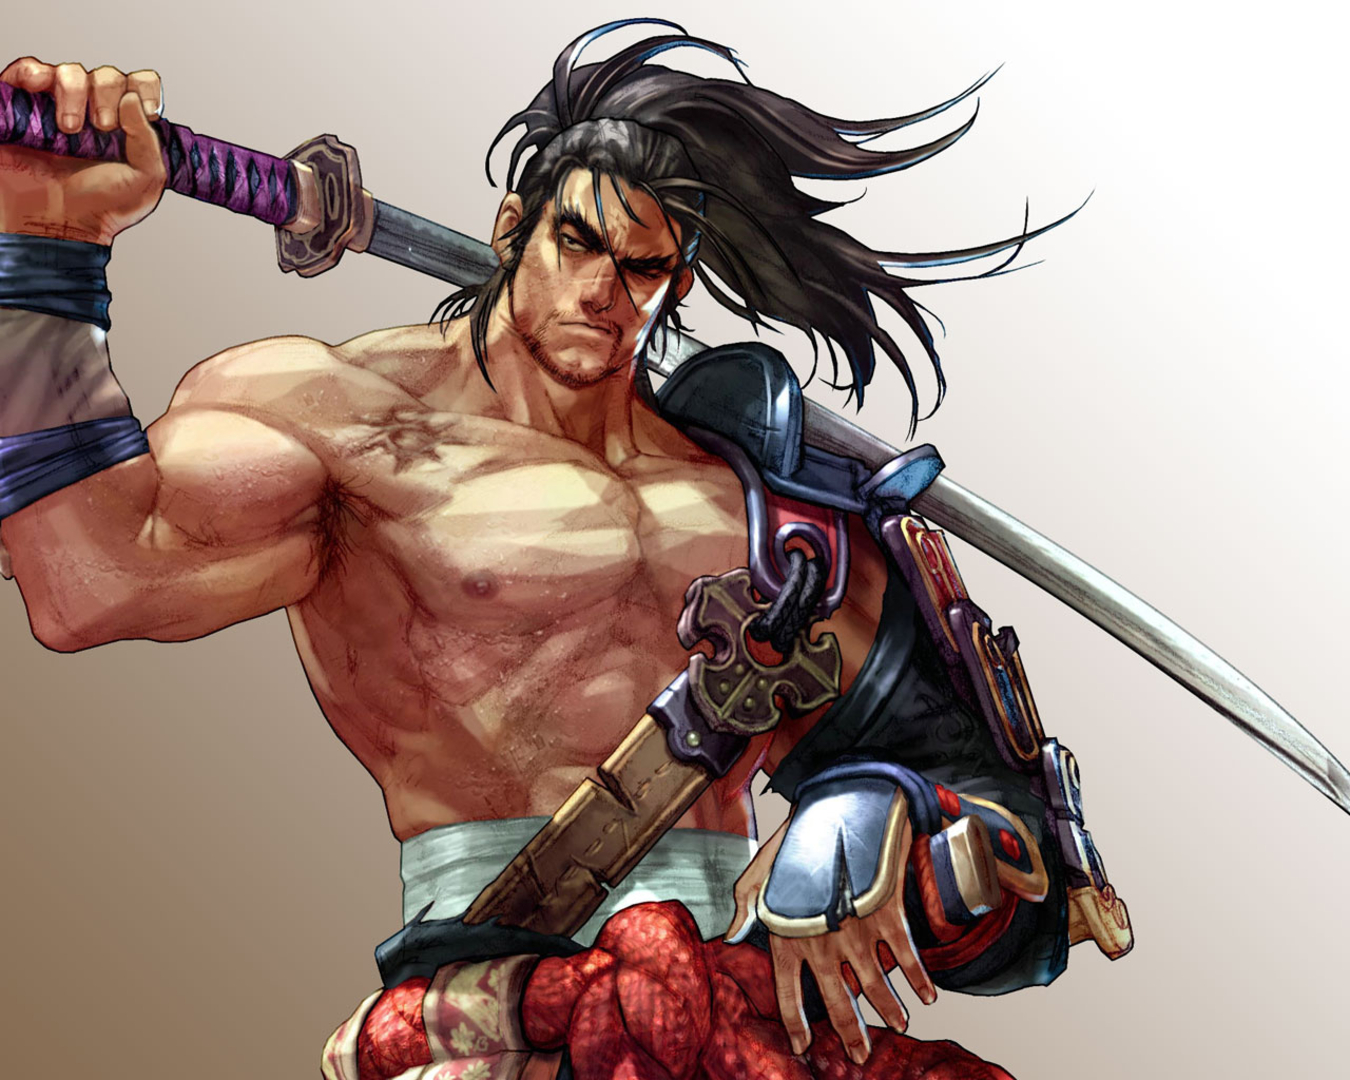 Event:Assassinate Fugetsu Amegai 1920x1080-soul-calibur-mitsurugi-warrior-muscular-anime-desktop-hd-wallpaper